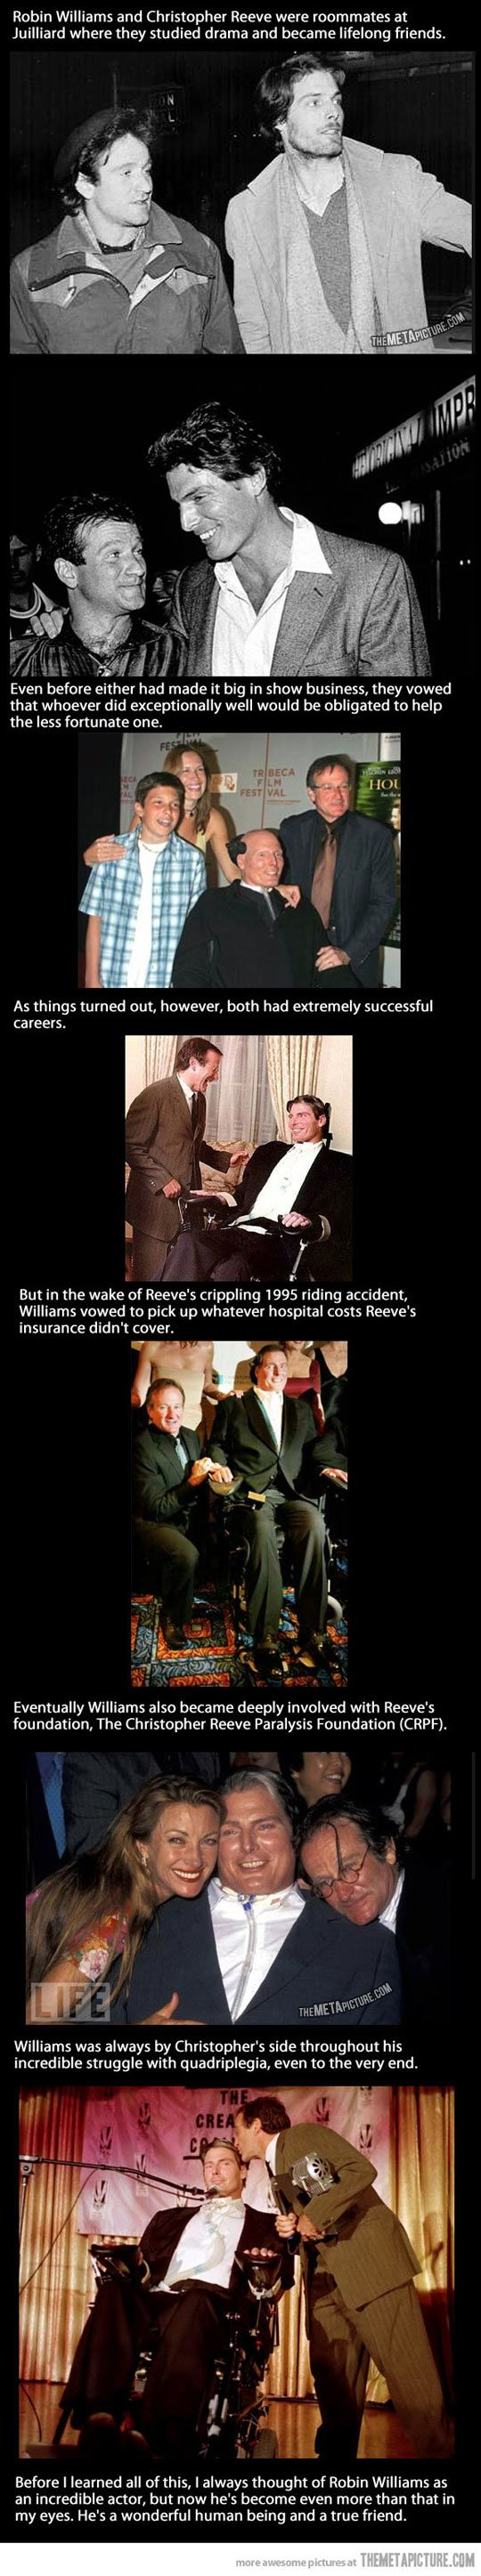 Robin Williams & Christopher Reeves friendship